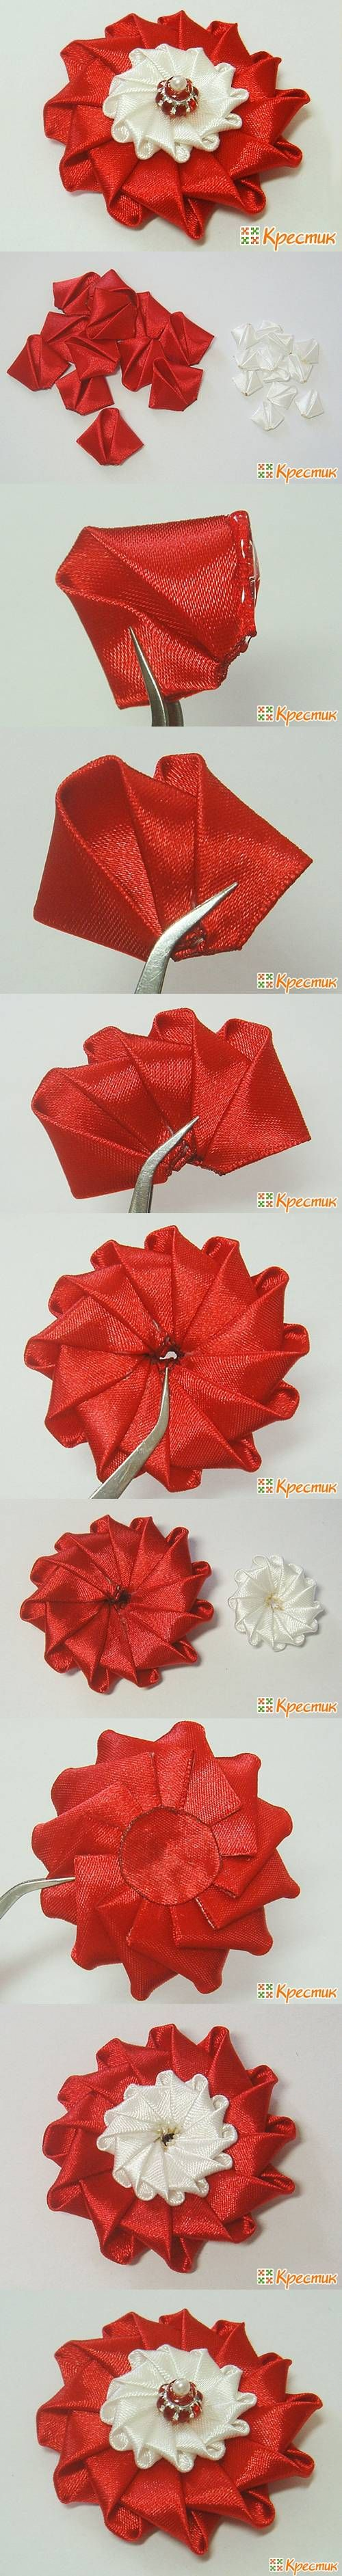 DIY Bright Satin Ribbon Flower | iCreativeIdeas.com Like Us on Facebook ==> https://www.facebook.com/icreativeideas